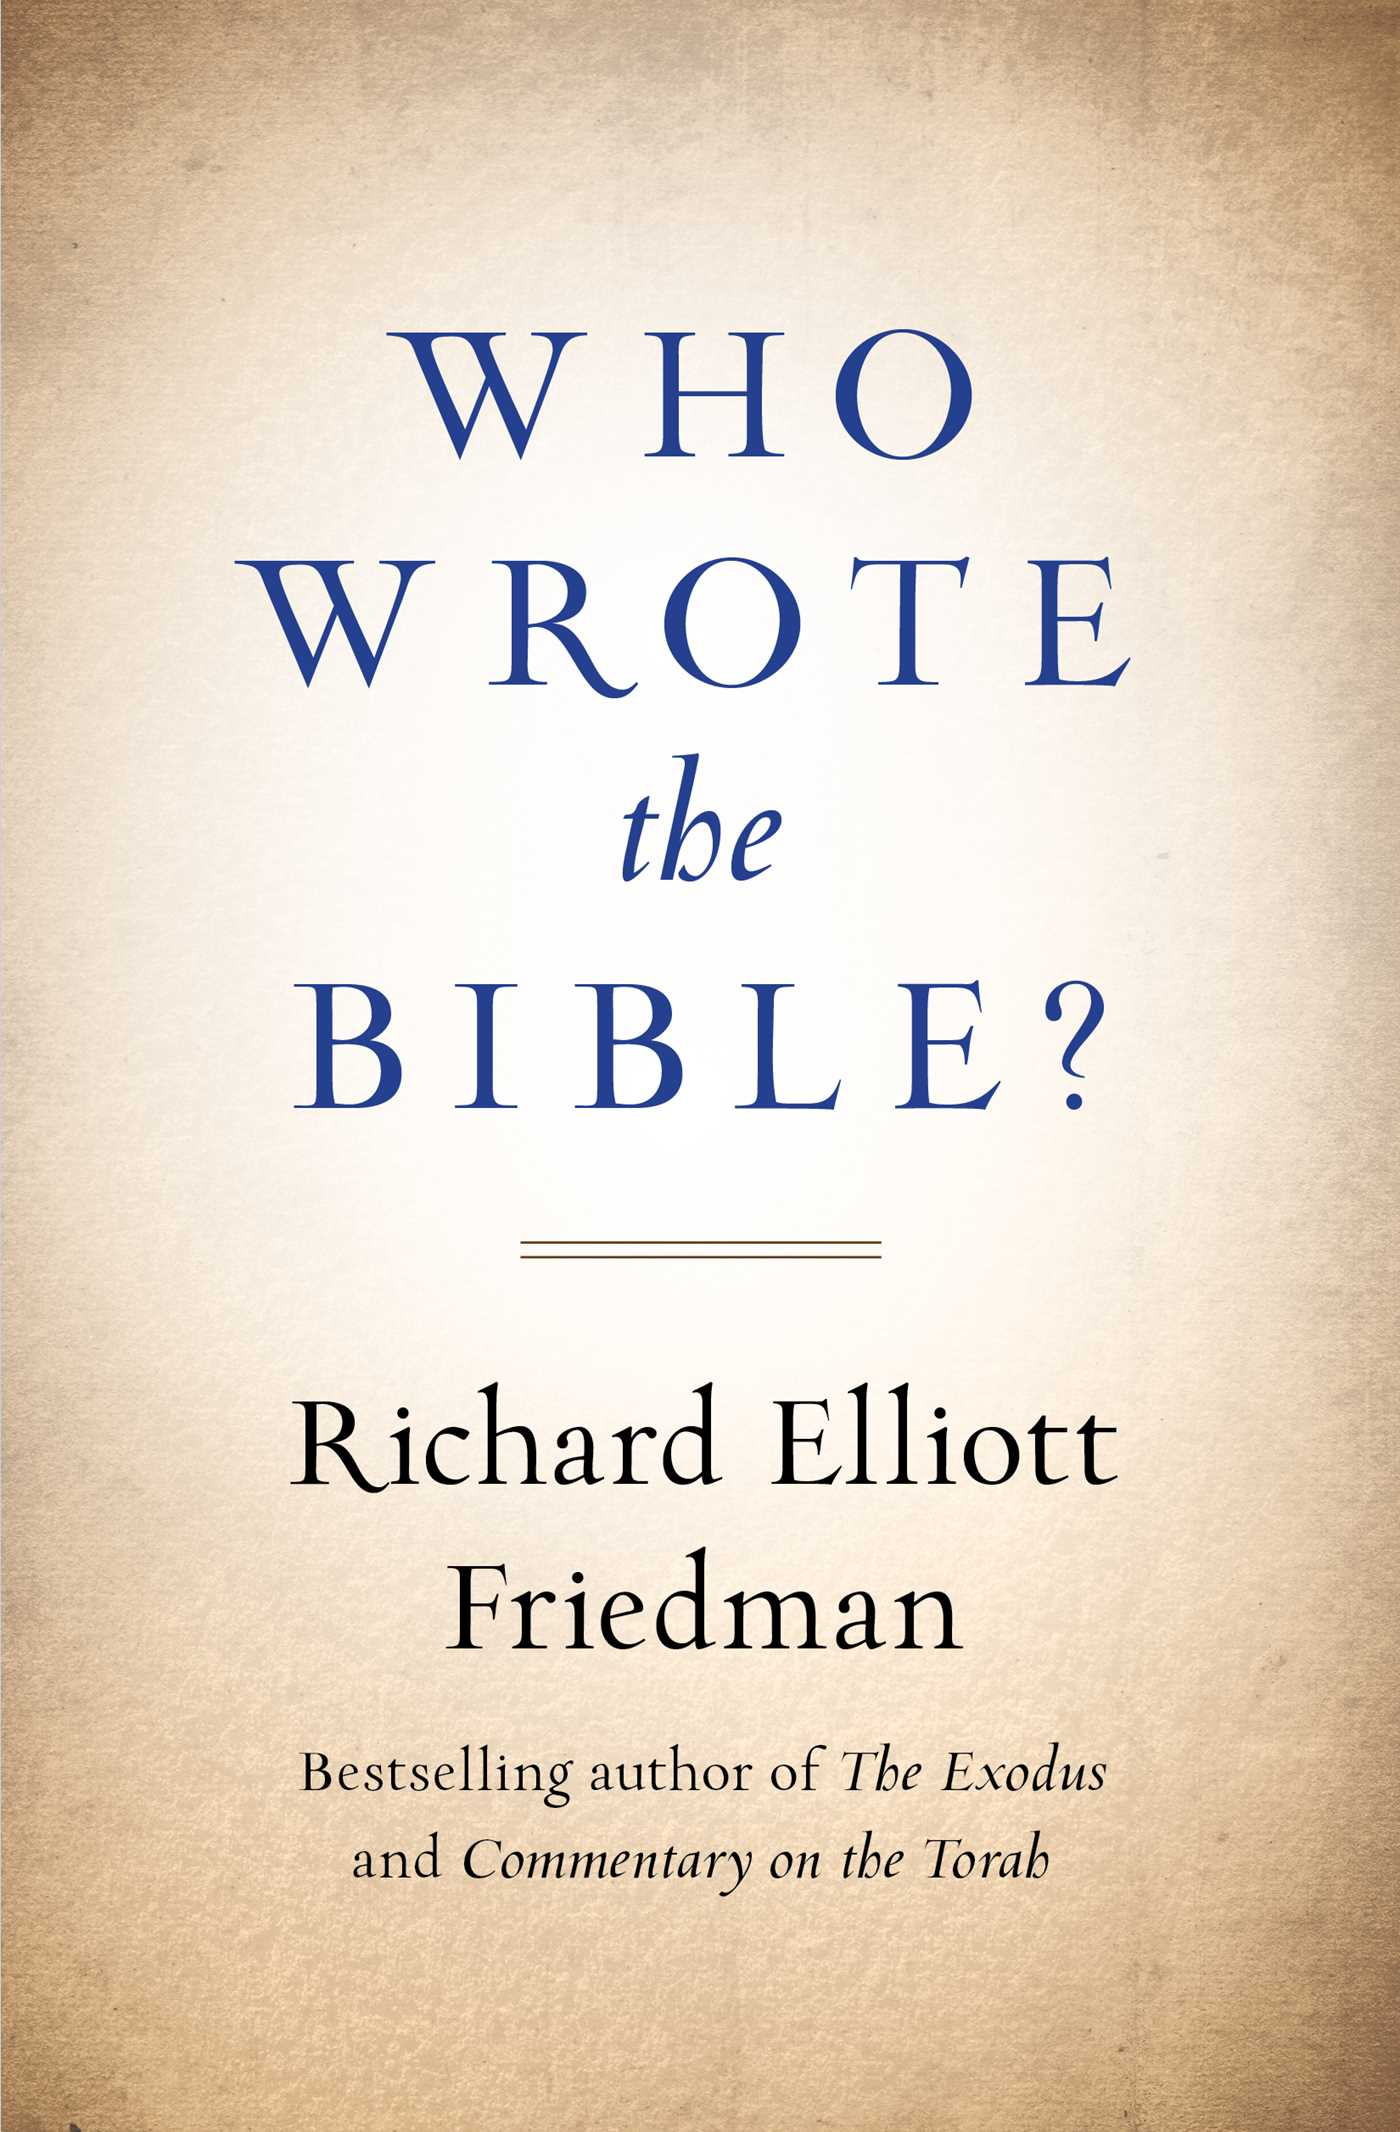 Download Who Wrote The Bible By Richard Elliott Friedman